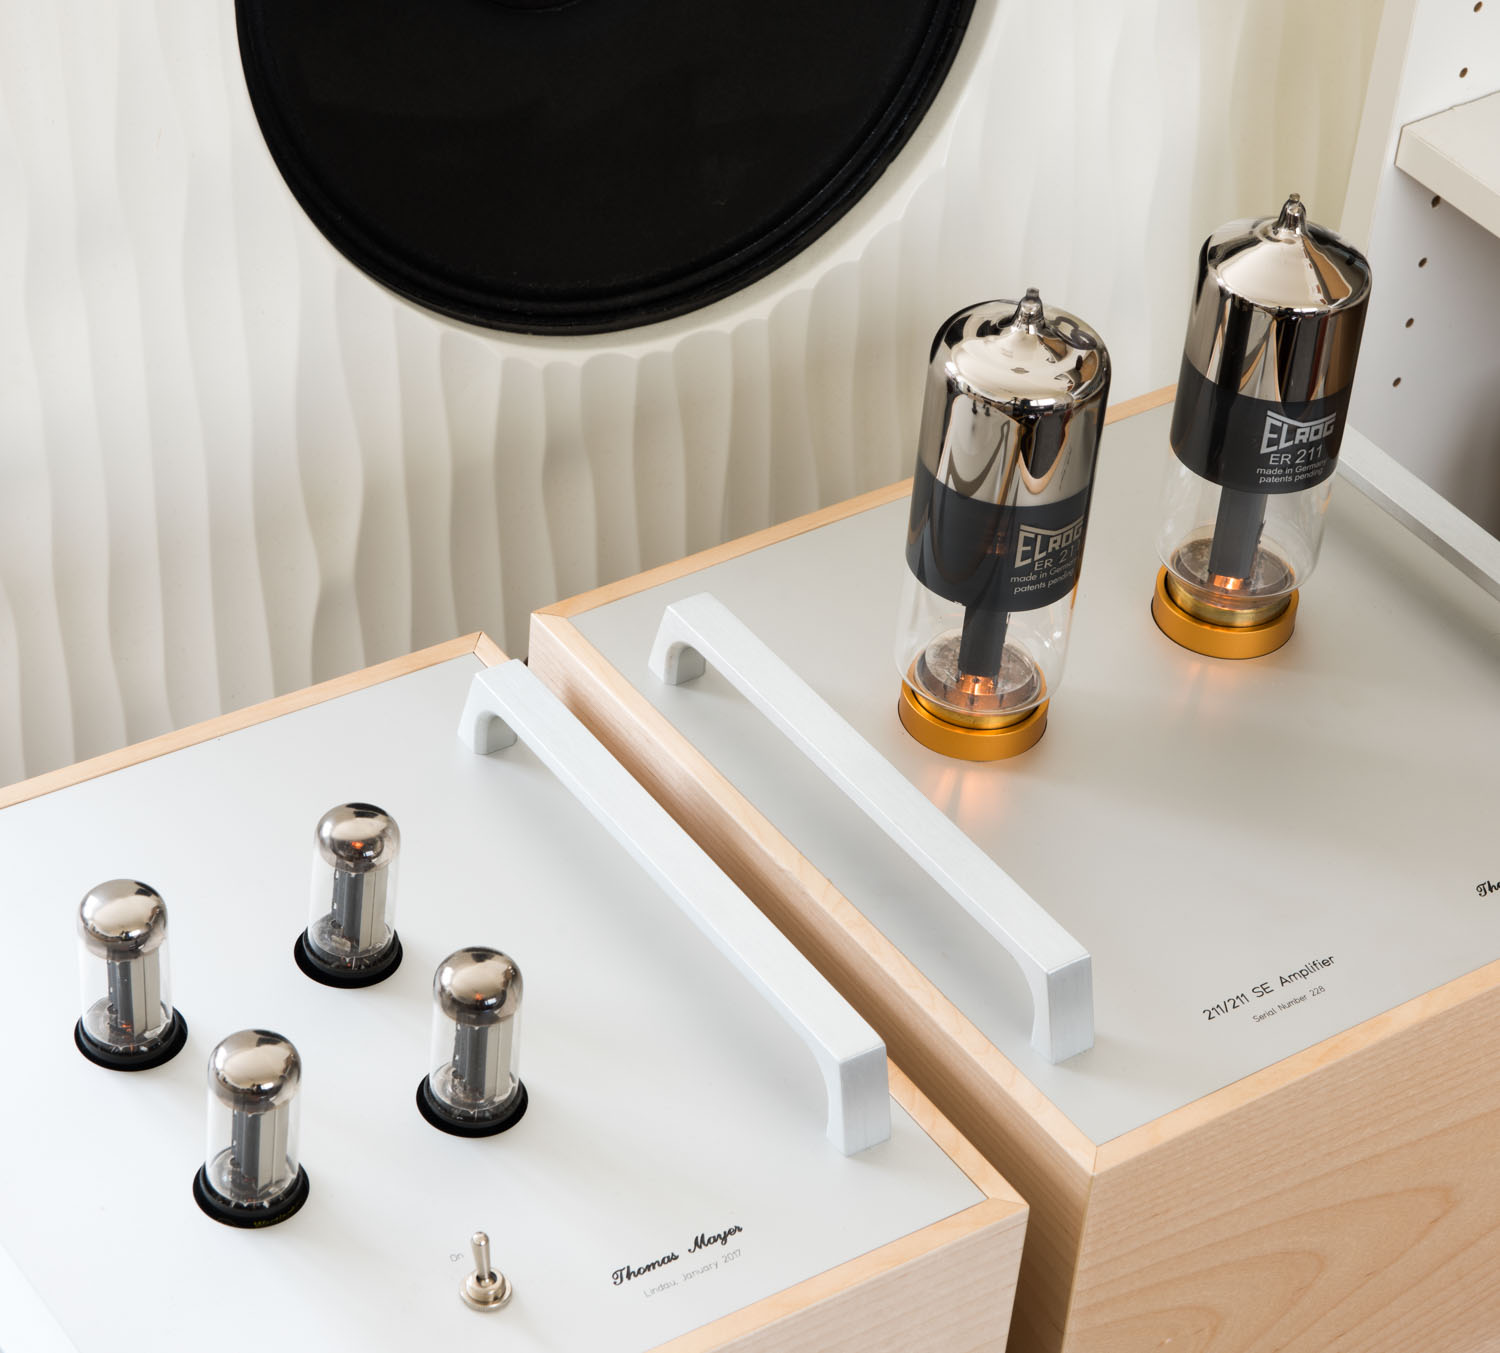 VinylSavor: More 211 amplifiers